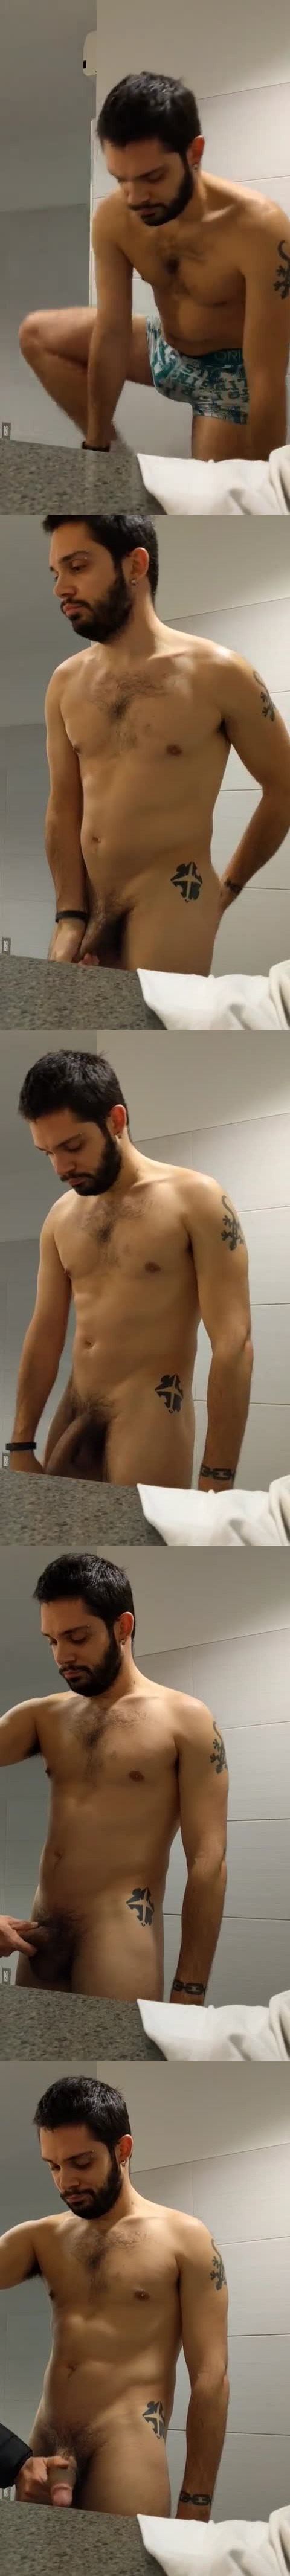 touching big dick gym toilet